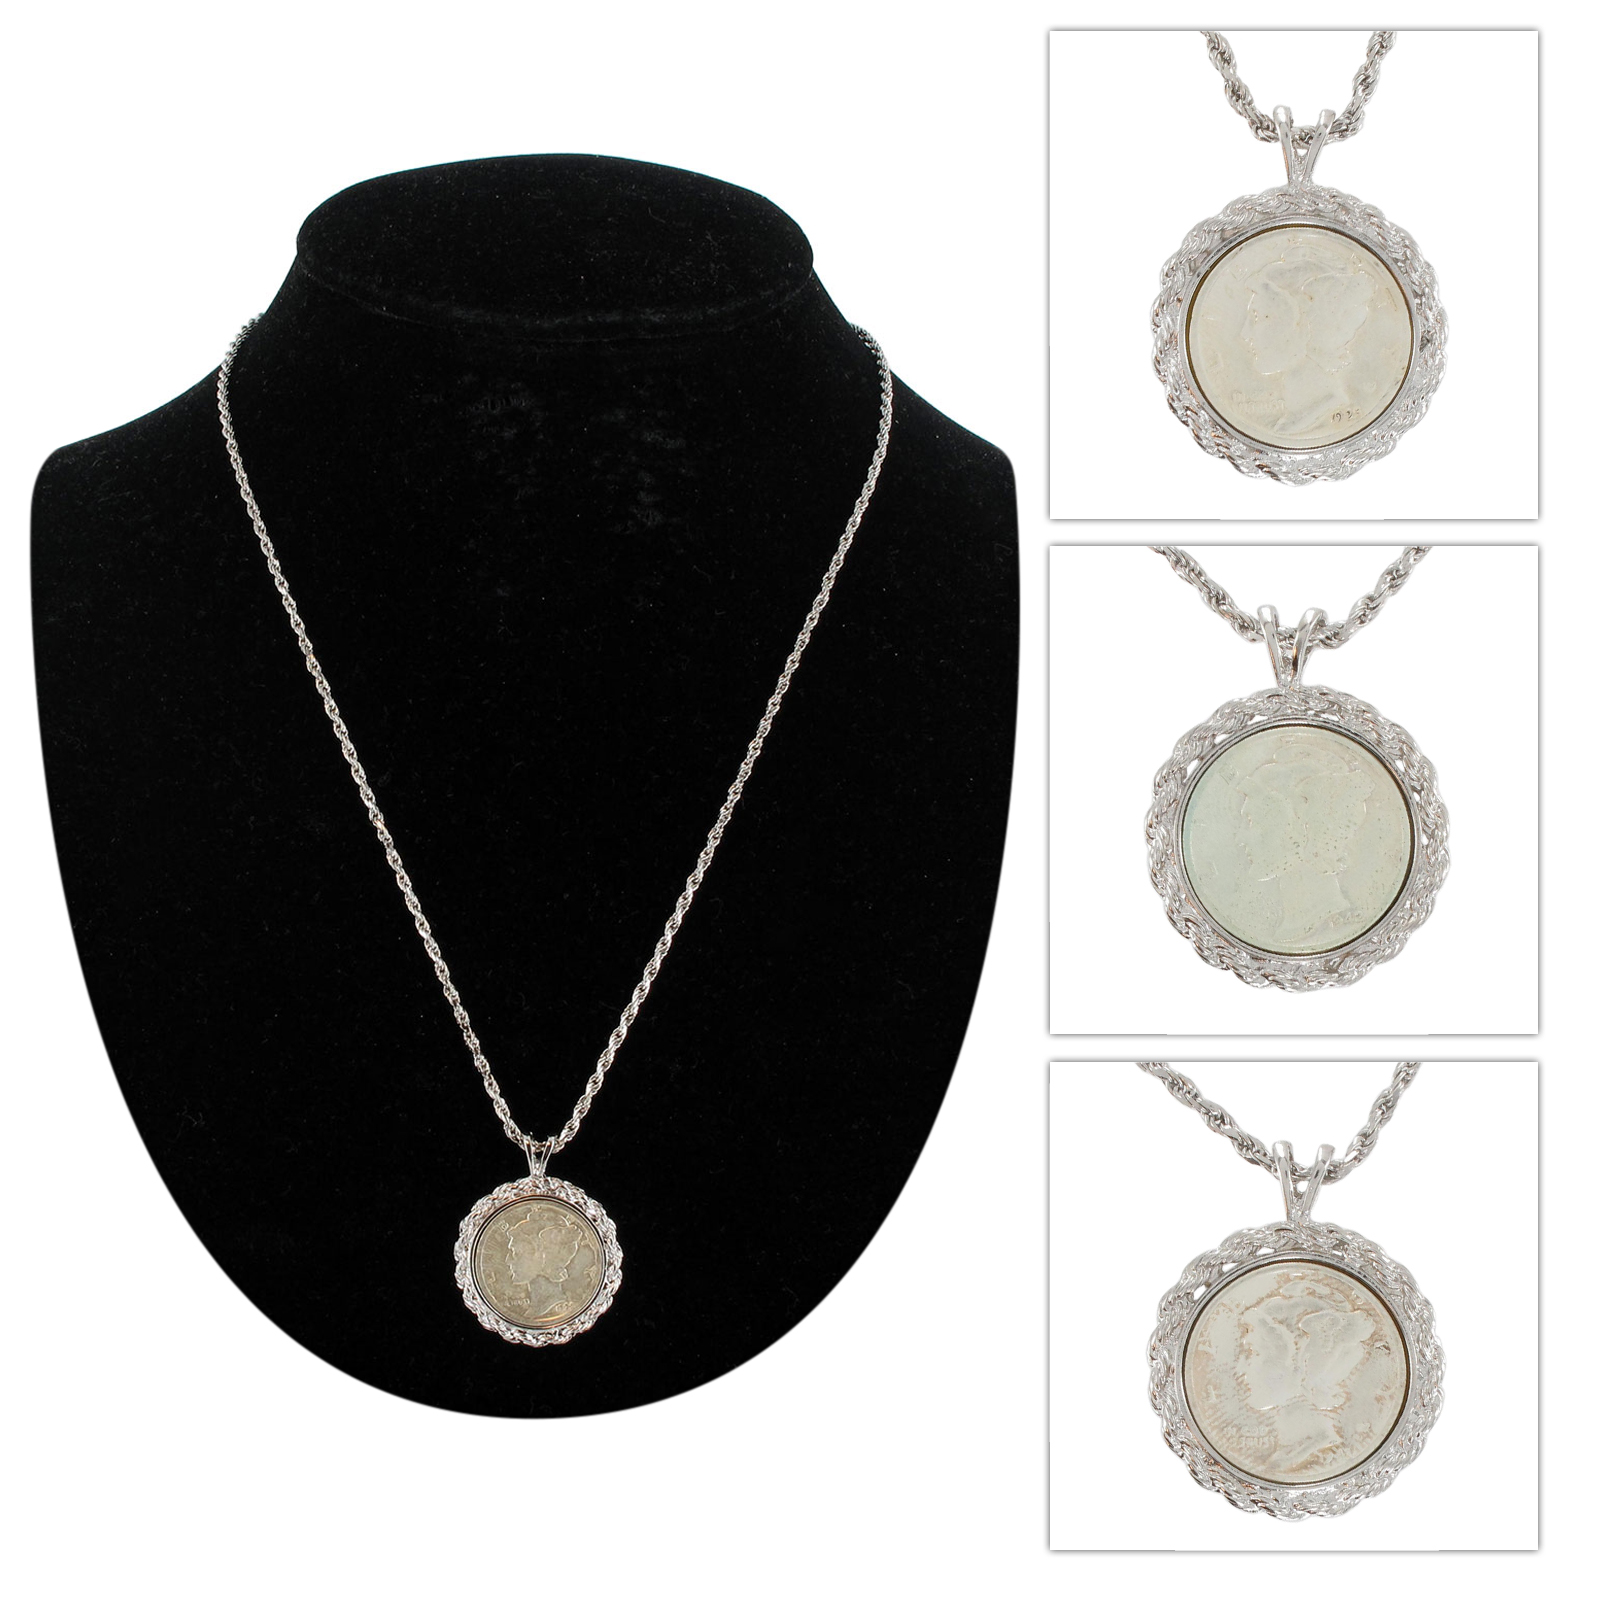 usa coin necklace sterling silver 925 mercury dime pendant